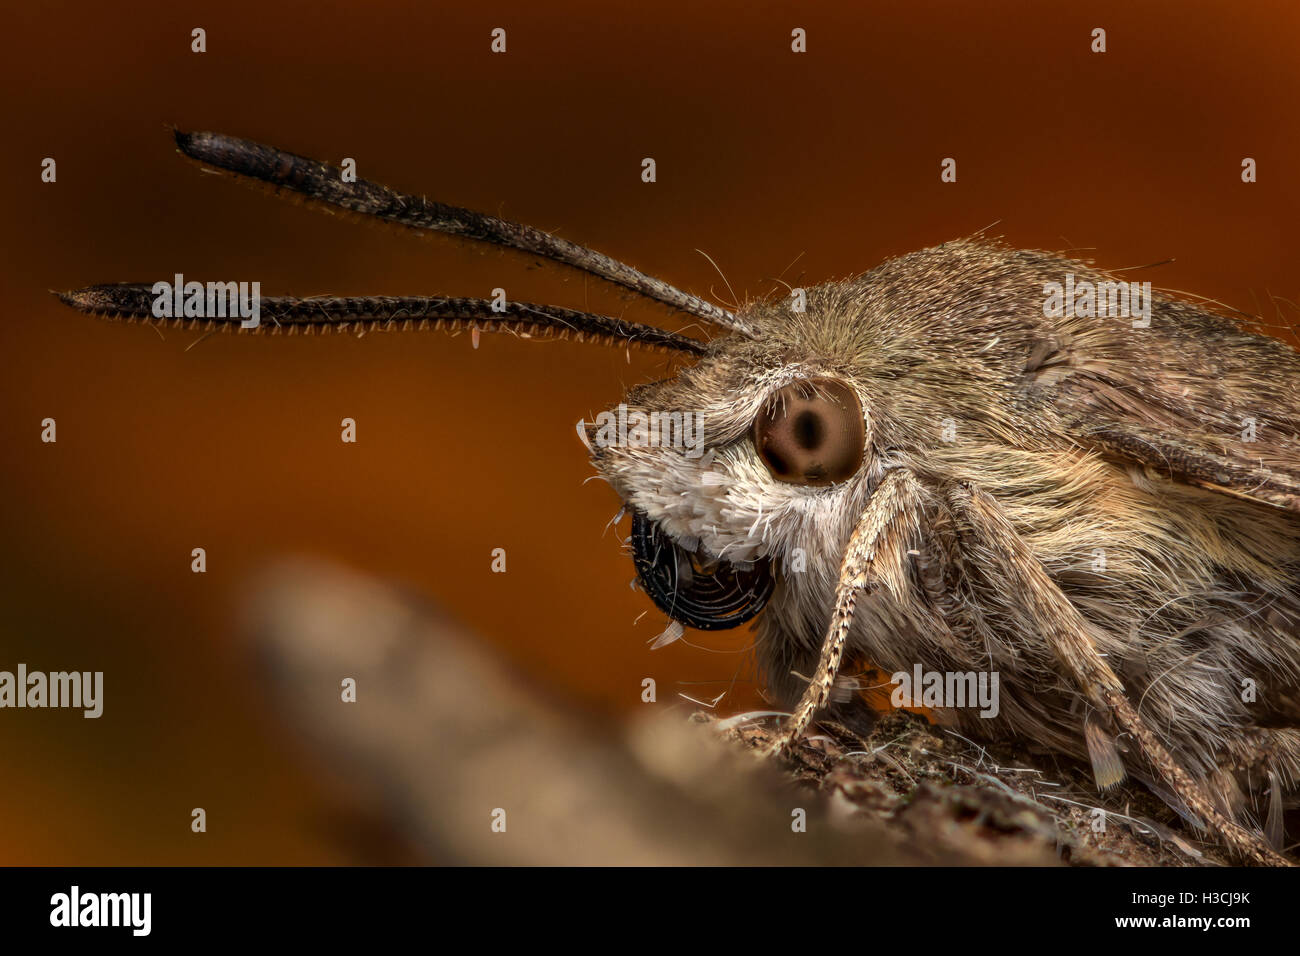 Extreme magnification - Hummingbird hawk-moth - Stock Image